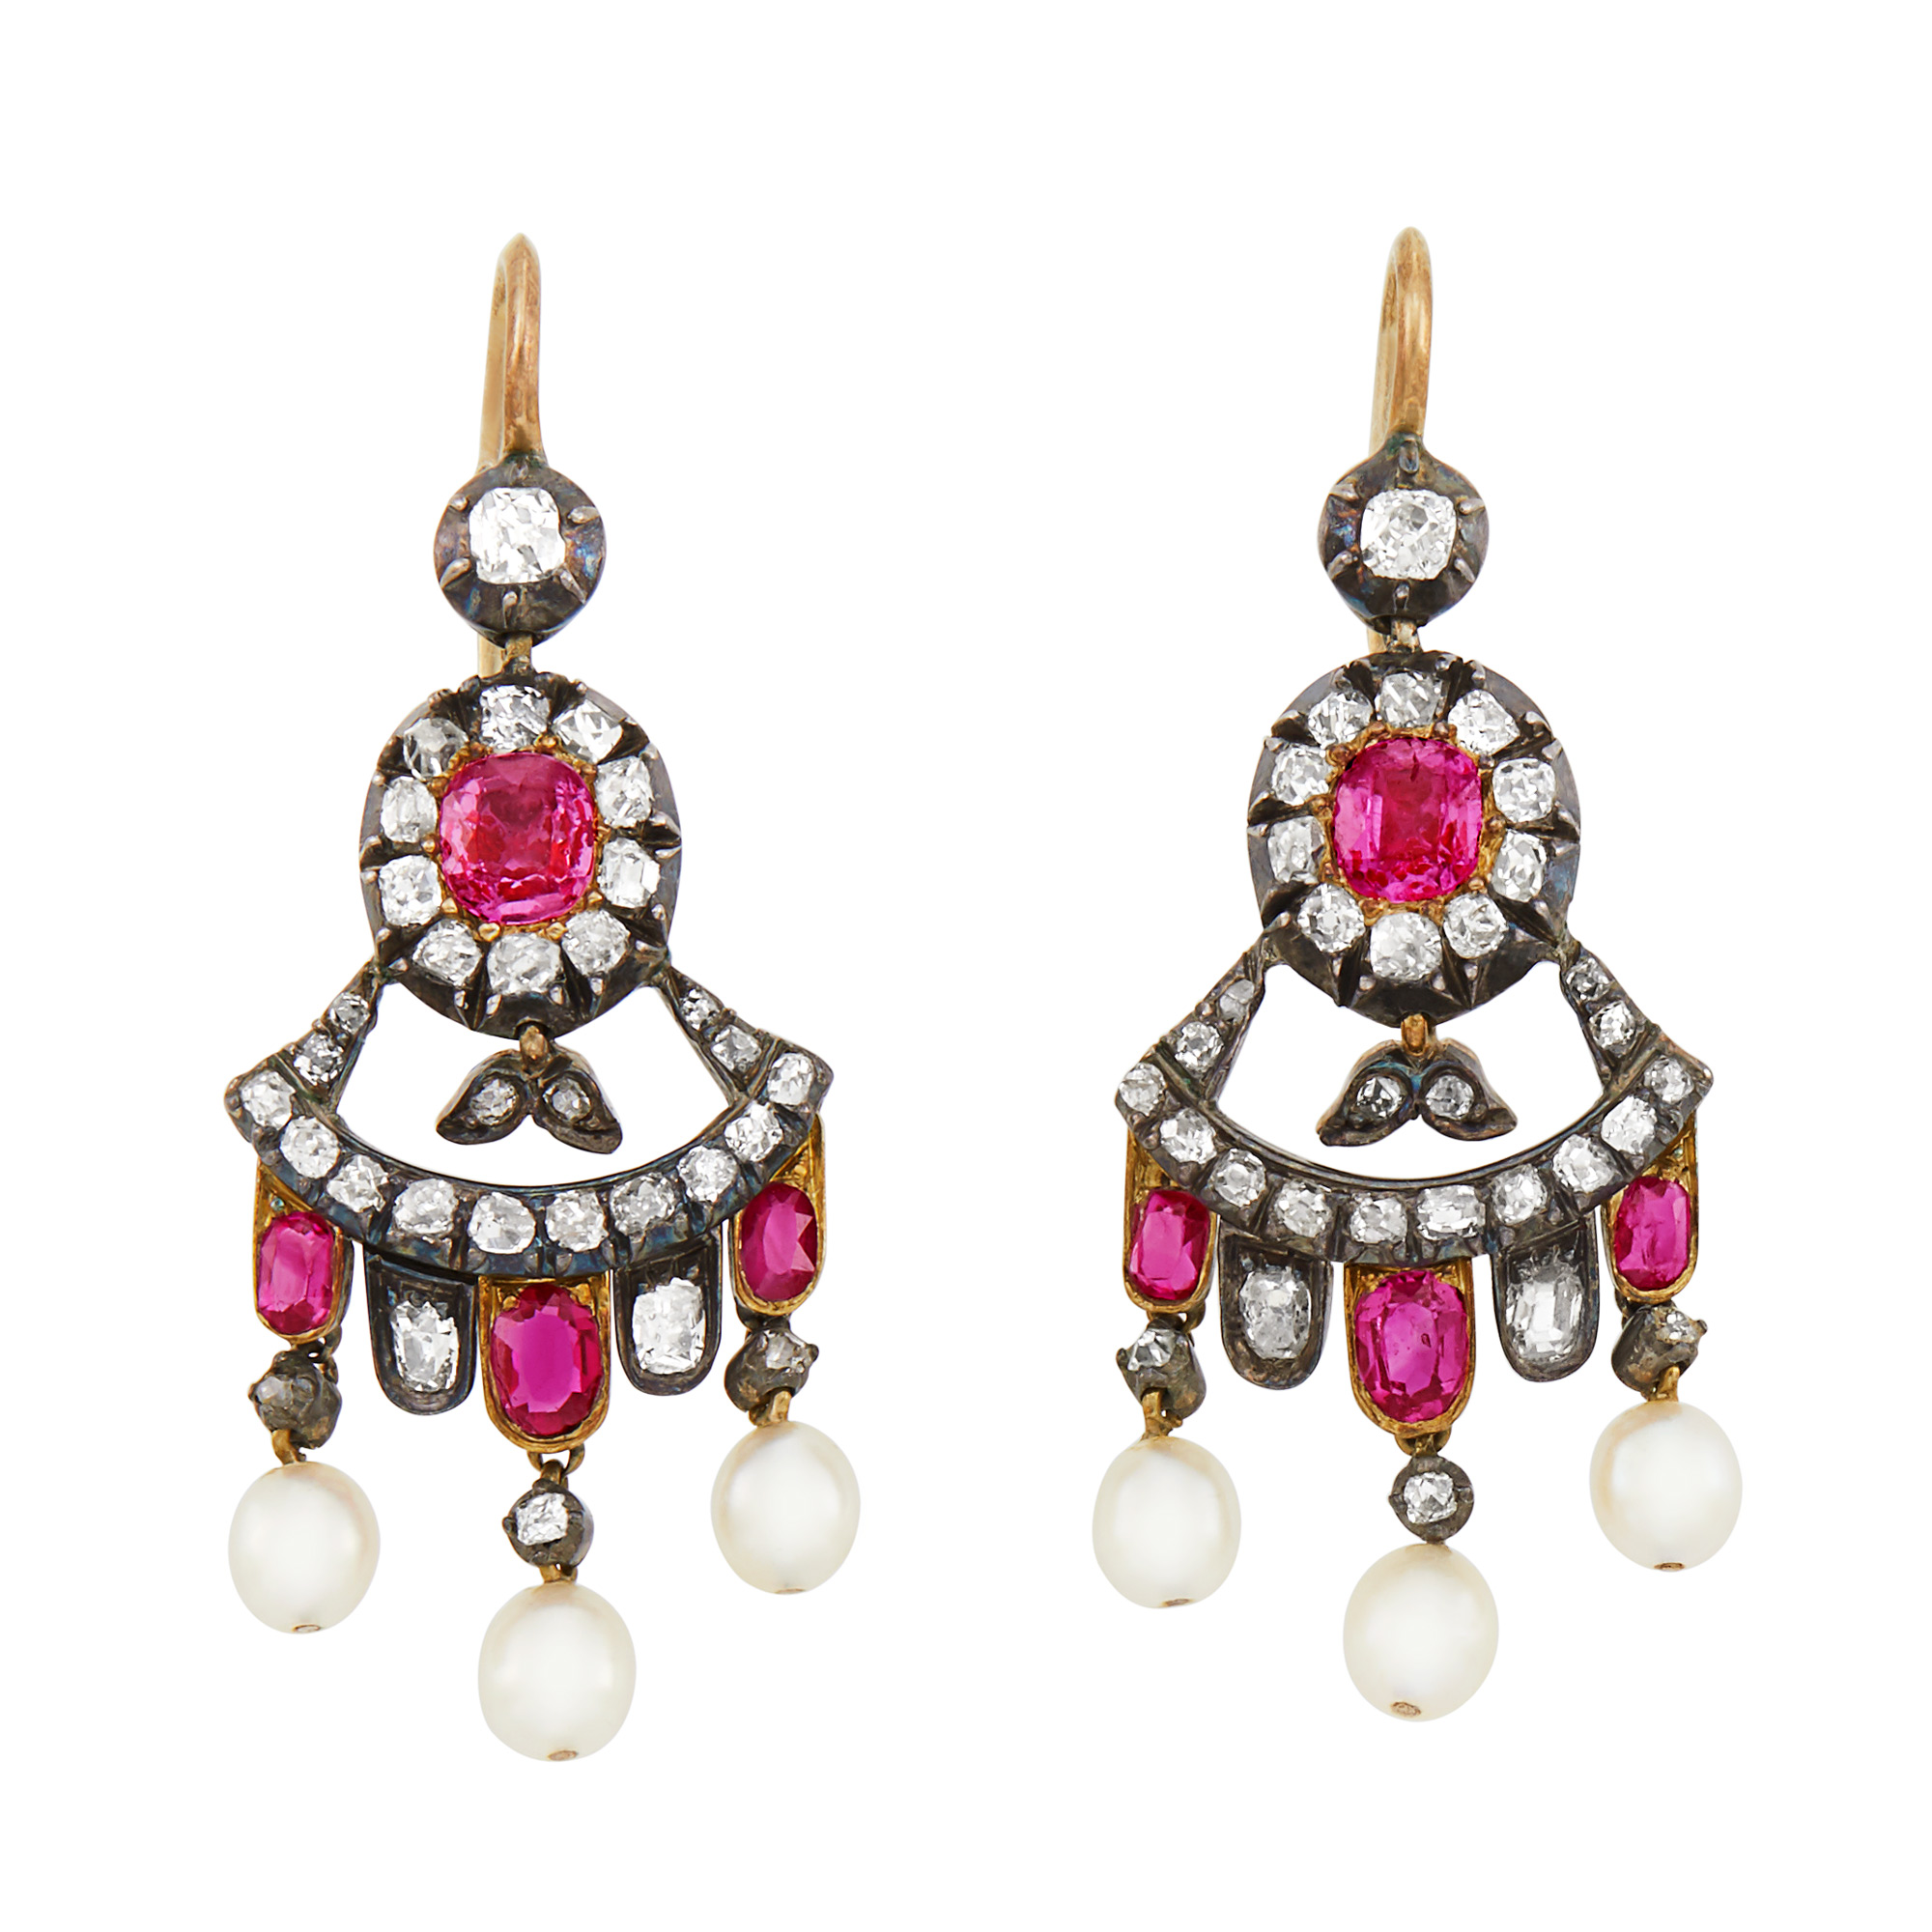 Lot image - Pair of Antique Silver, Gold, Ruby, Pearl and Diamond Girandole Pendant-Earrings